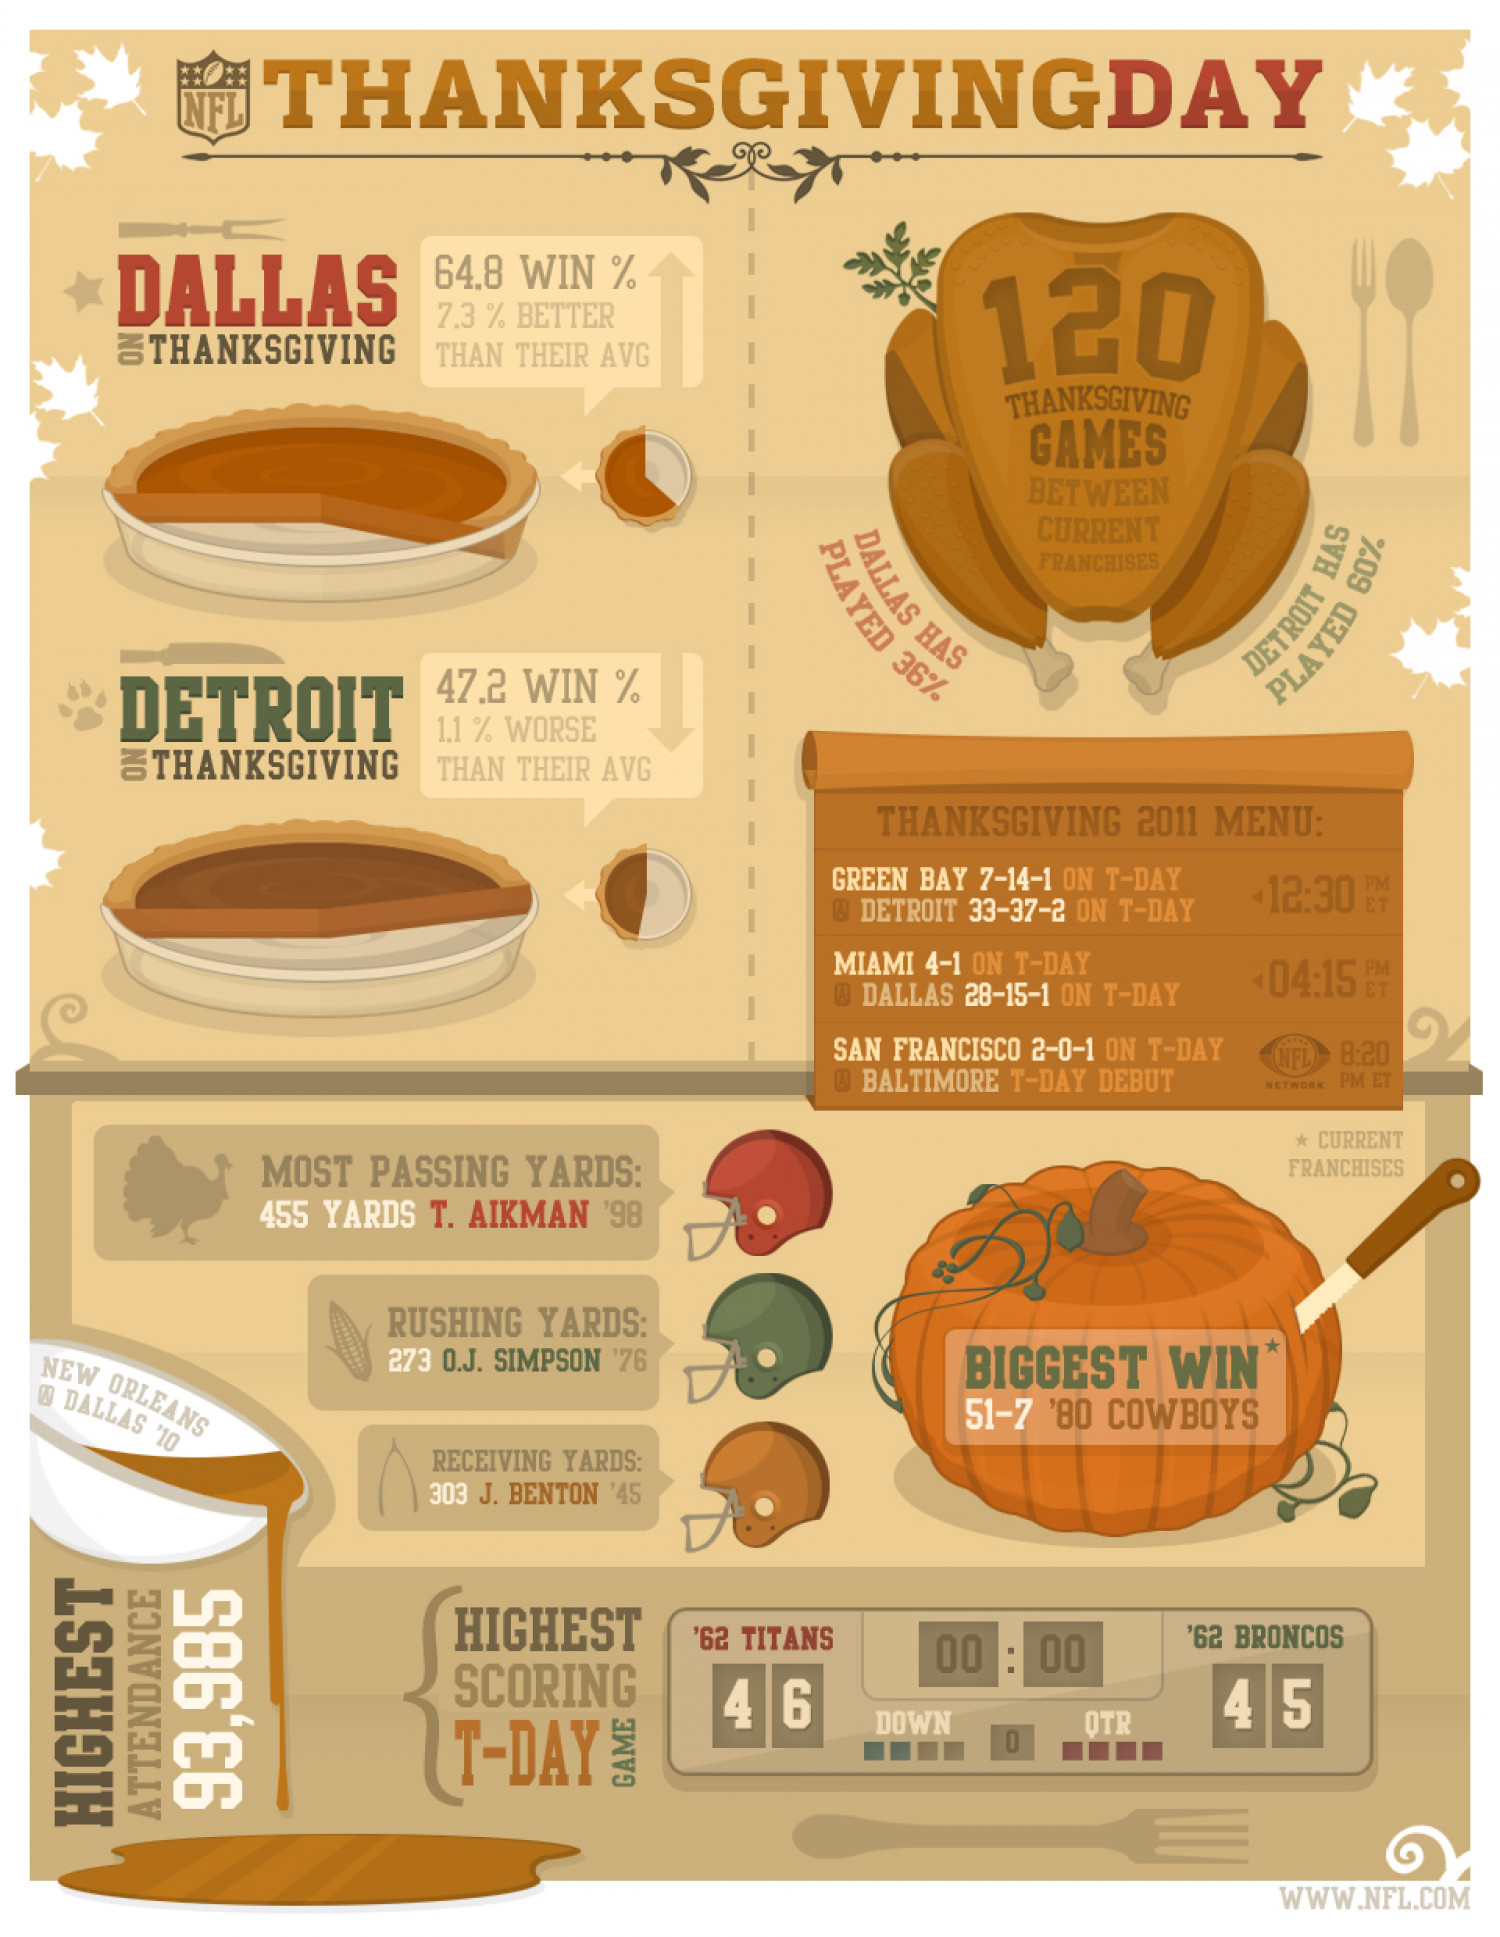 NFL - Thanksgiving Infographic